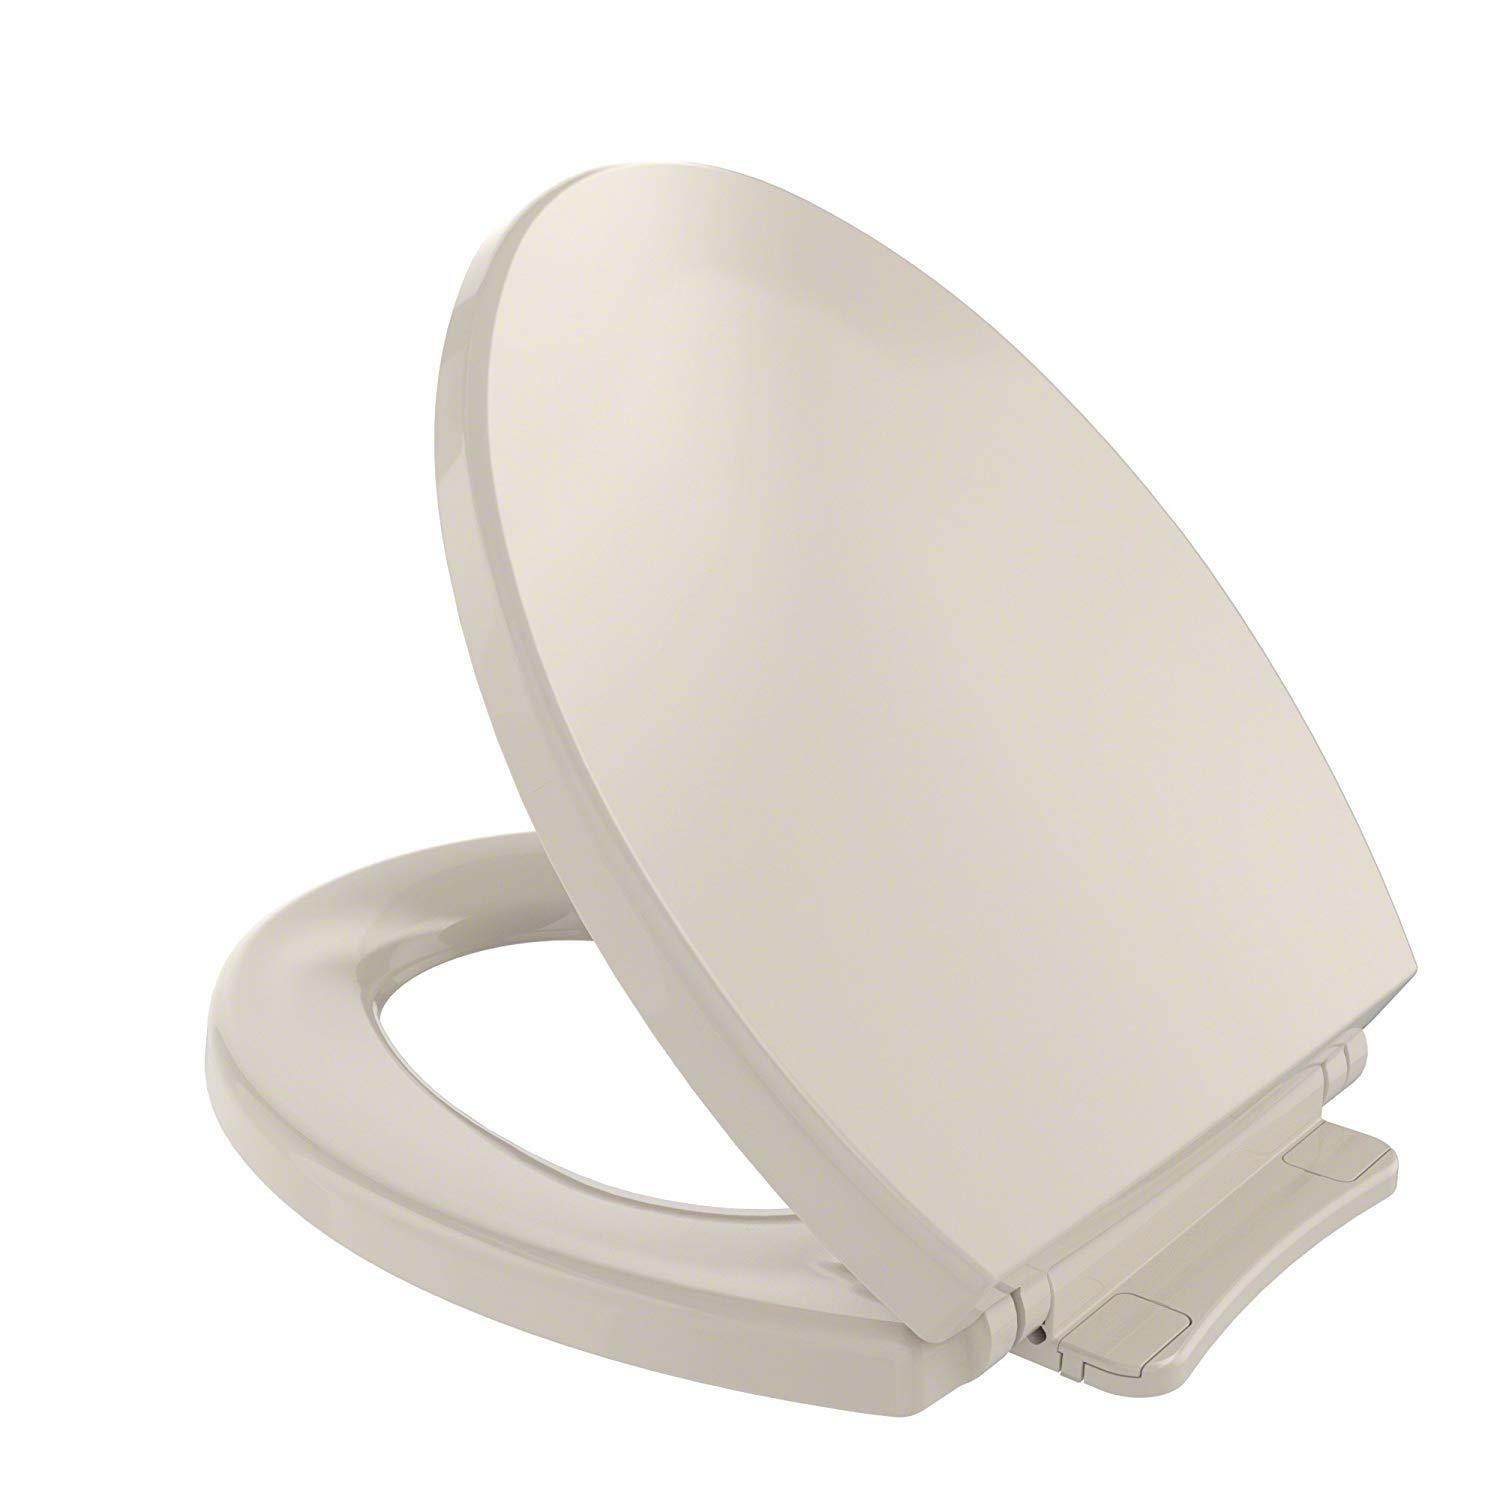 Toto Elongated Toilet Seat.Details About Toto Ss114 01 Softclose Elongated Toilet Seat Cover Cotton White